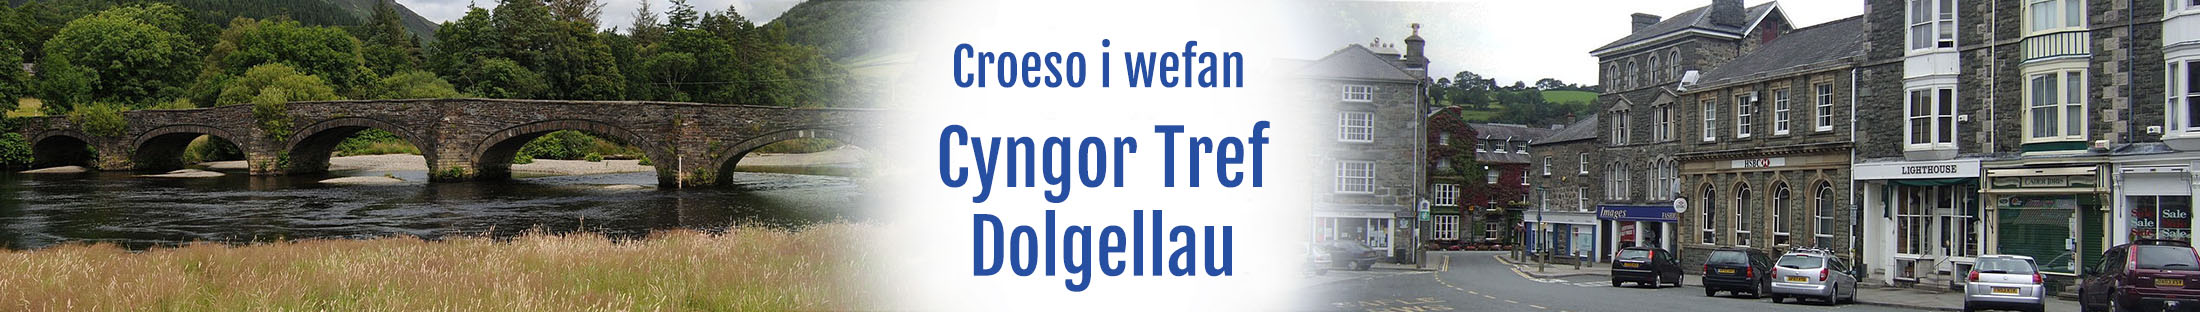 Header Image for Dolgellau Town Council